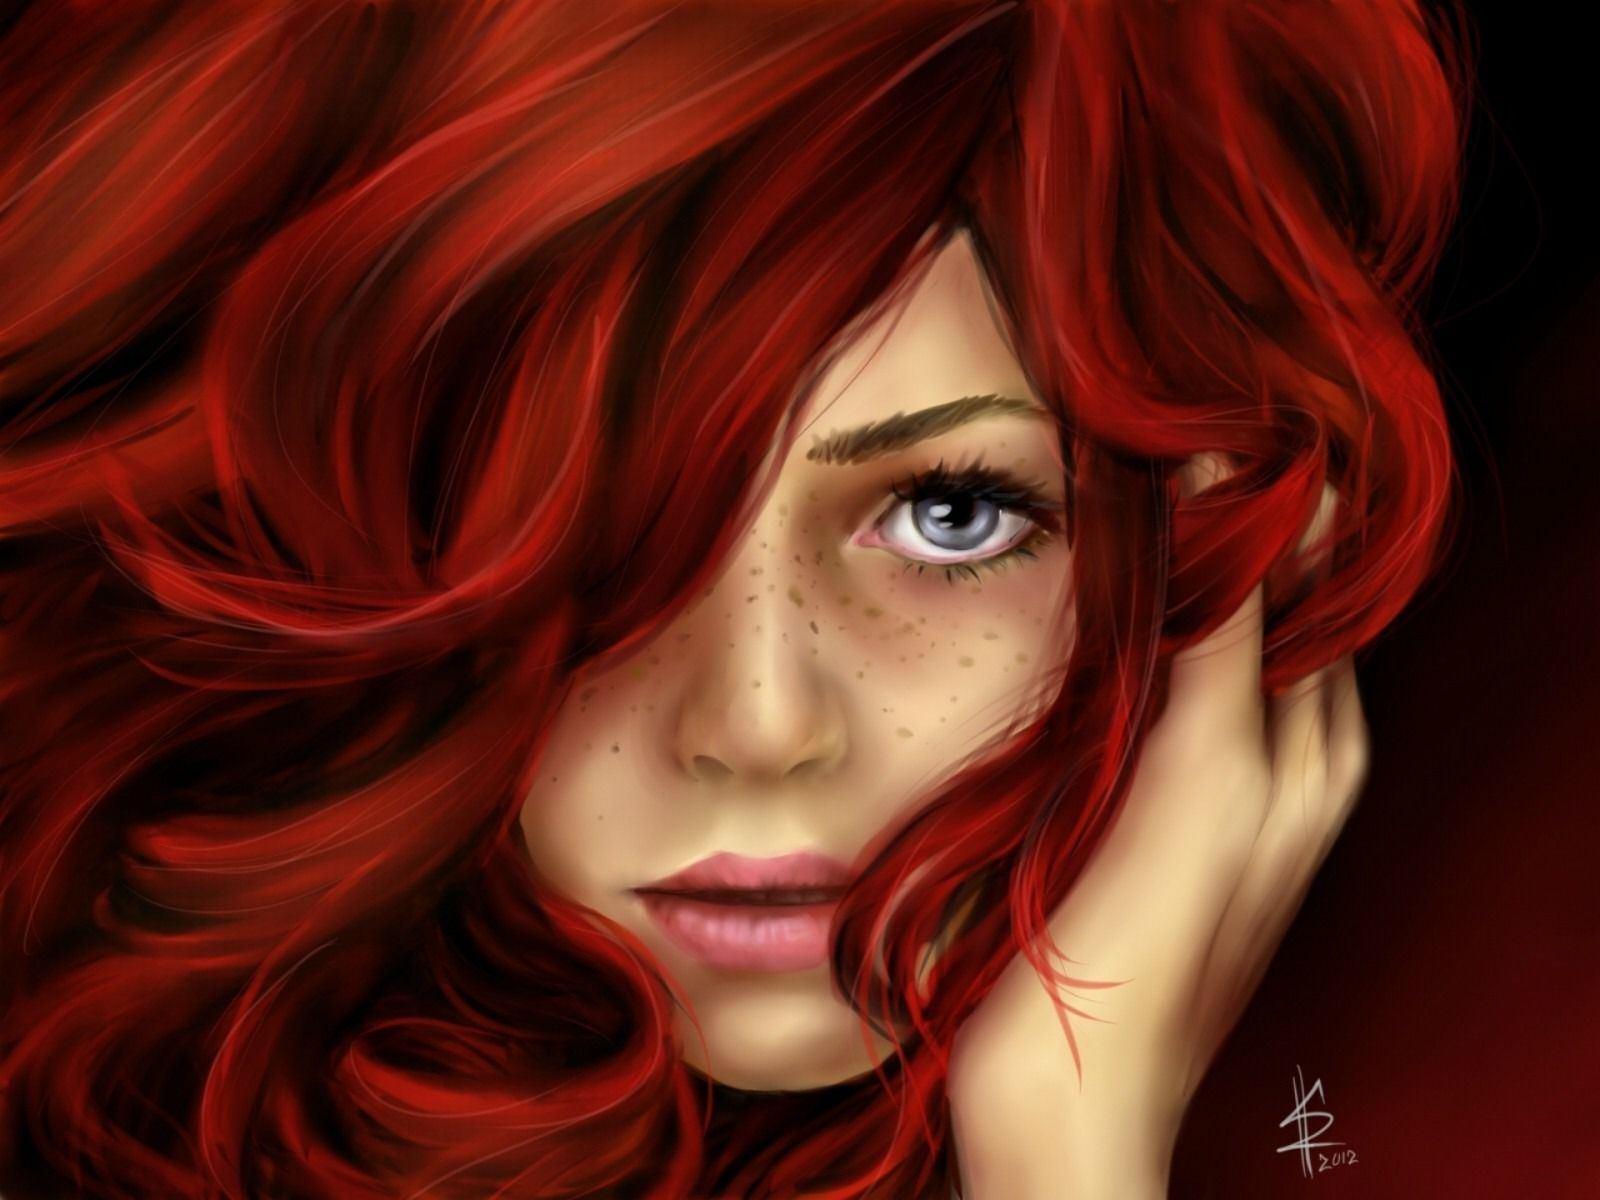 Beautiful Red Hair Girl Drawing Girls With Red Hair Red Hair Beautiful Red Hair